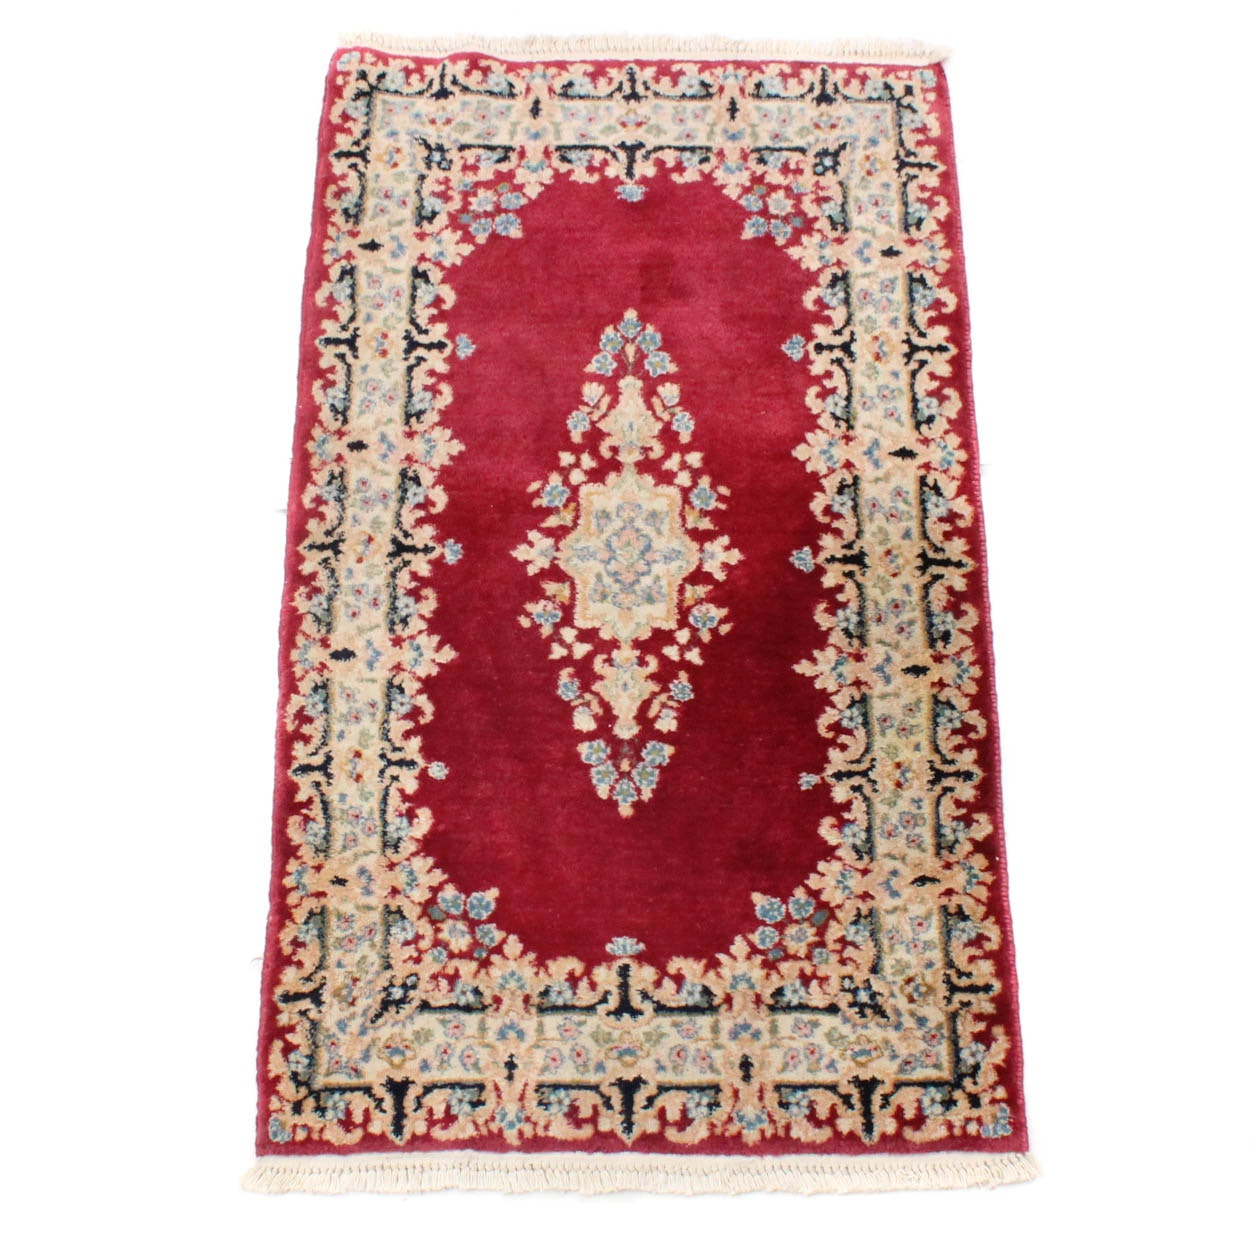 3' x 5' Hand-Knotted Persian Kirman Rug